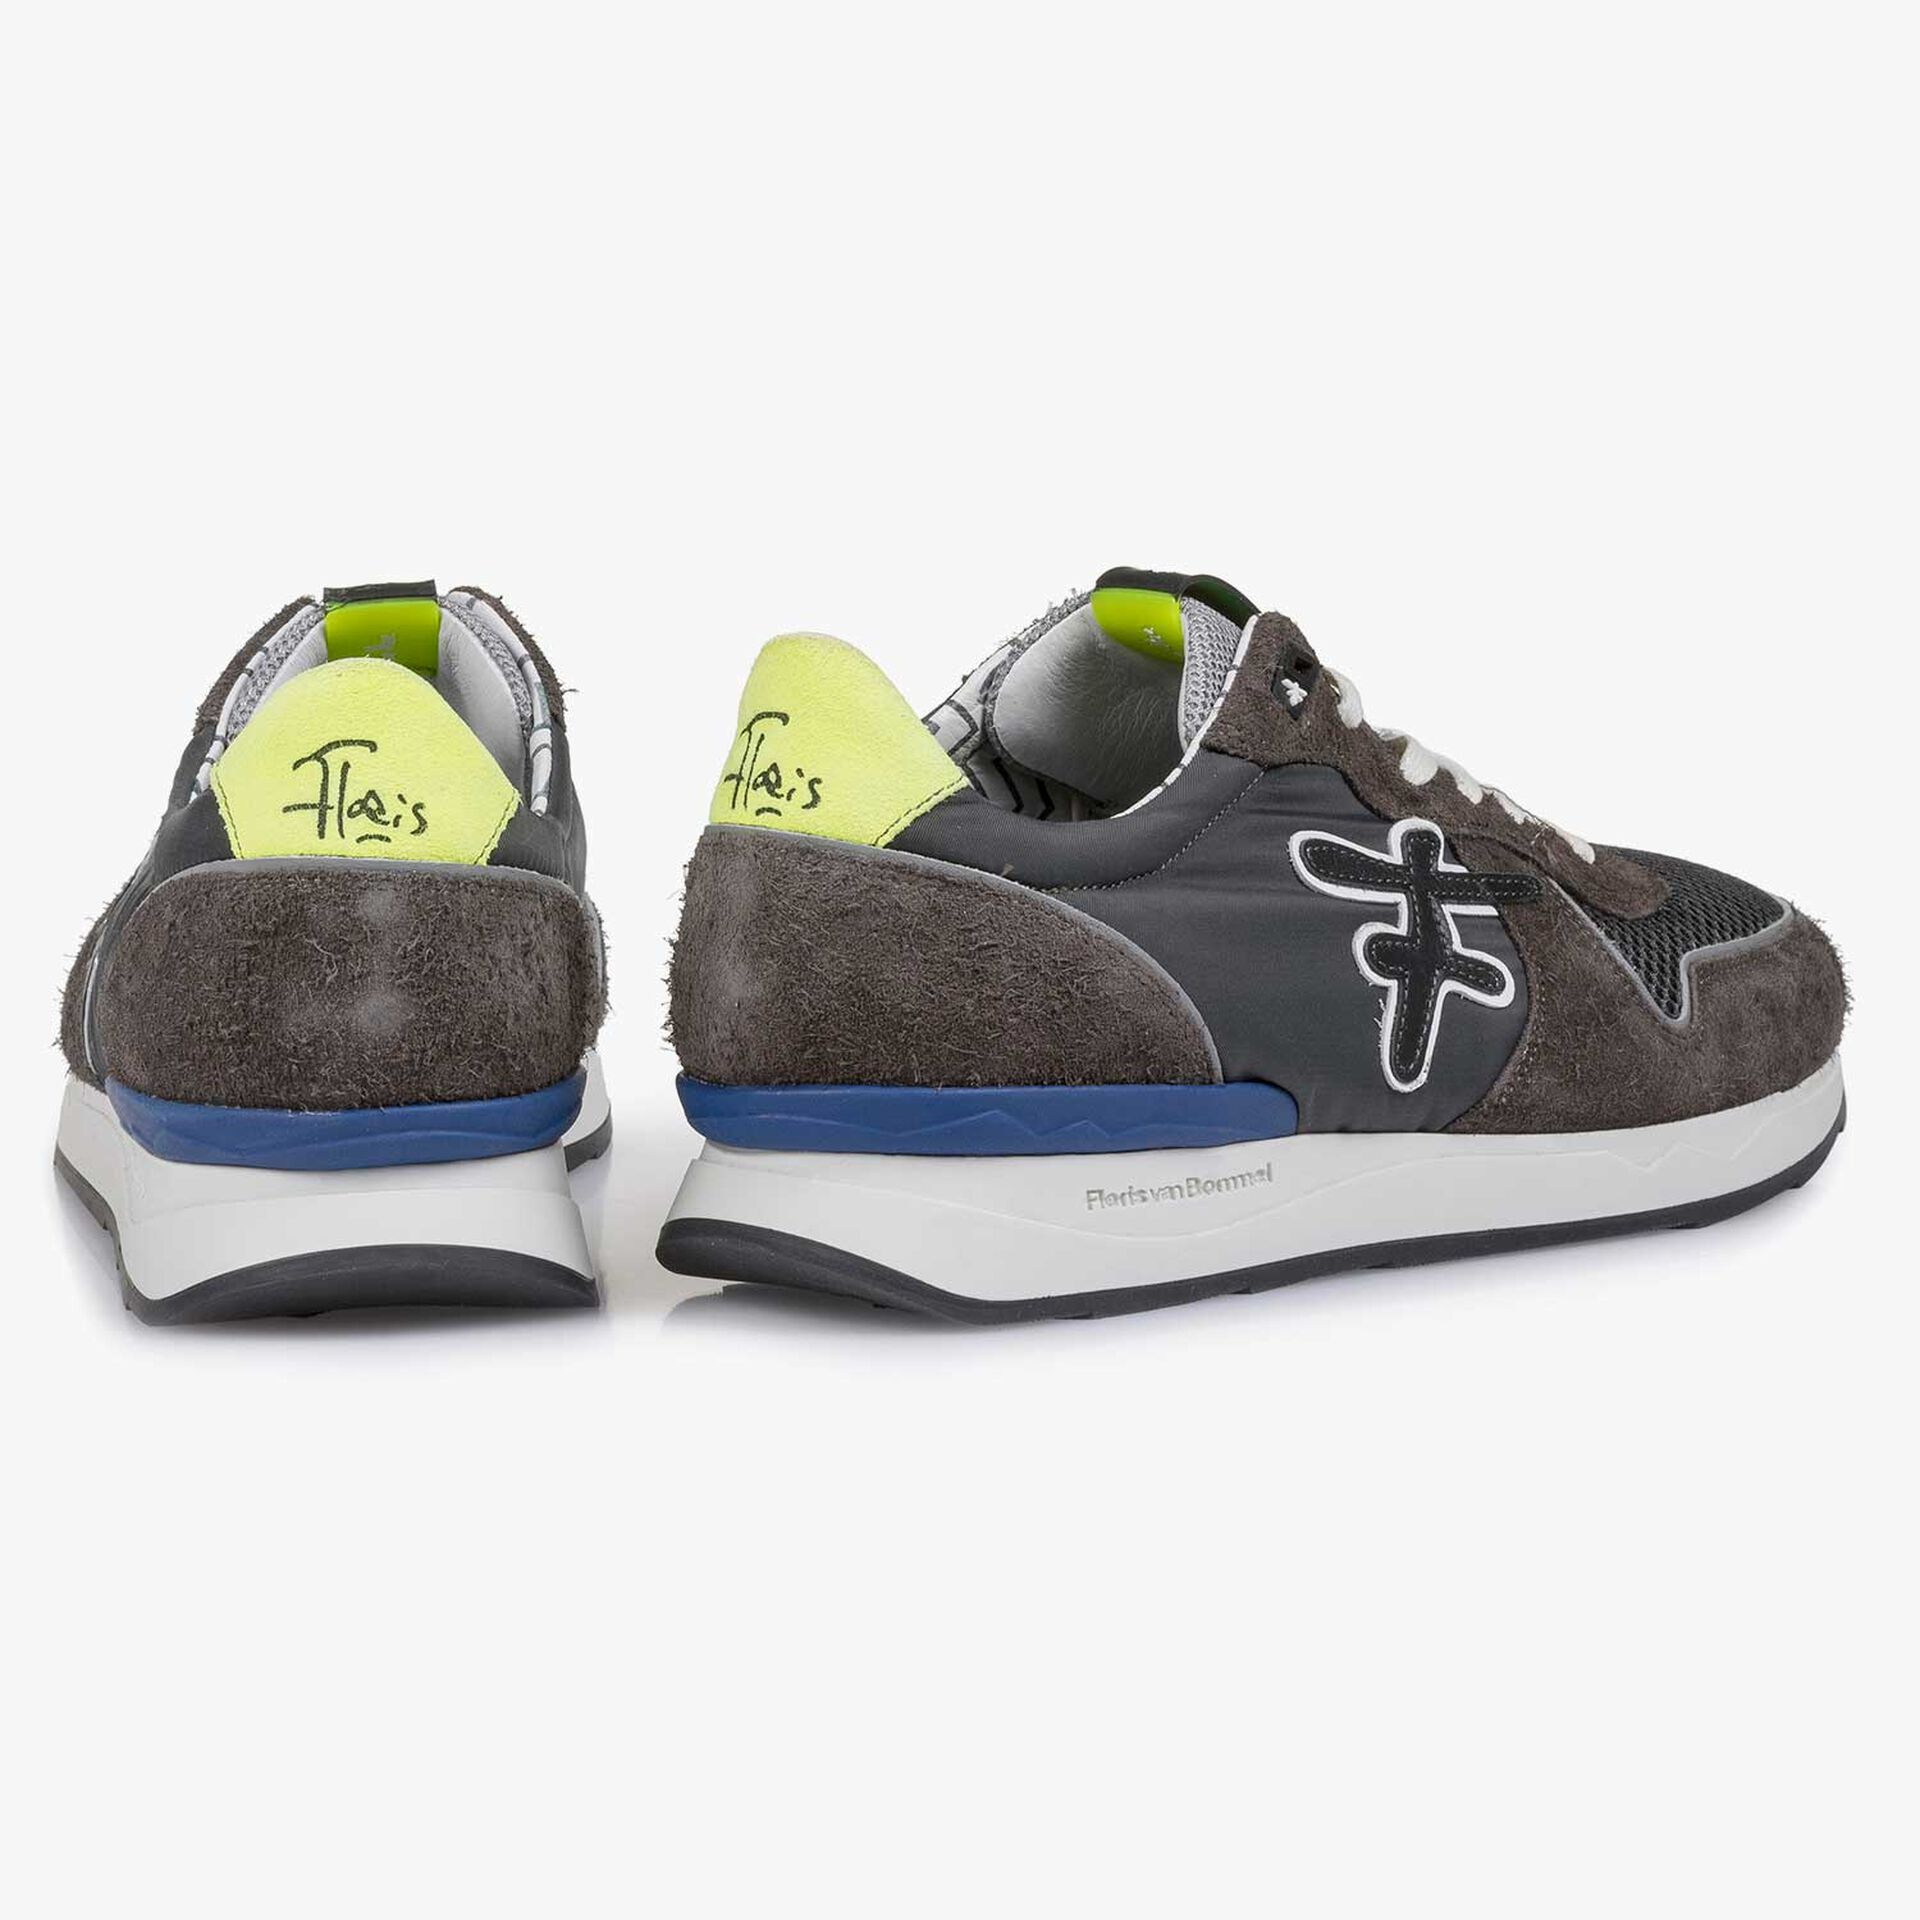 Grey-blue suede leather sneaker